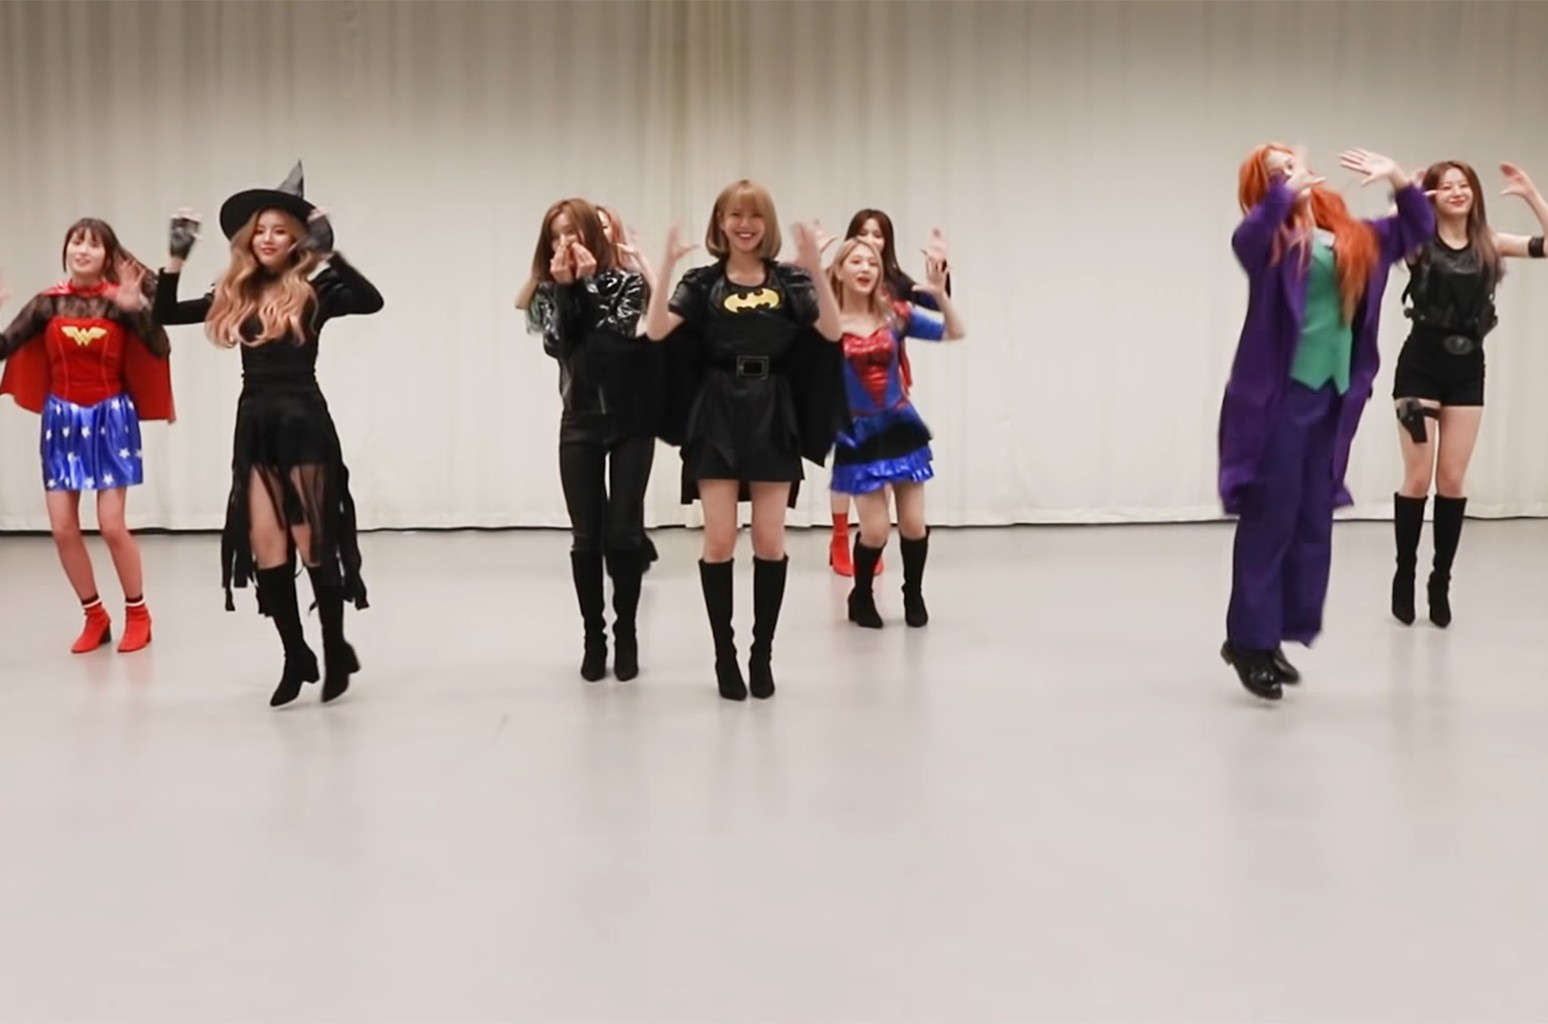 K Pop Stars Show Up For Halloween 2018 See Costumes By Twice Shinee Nct 127 More Billboard